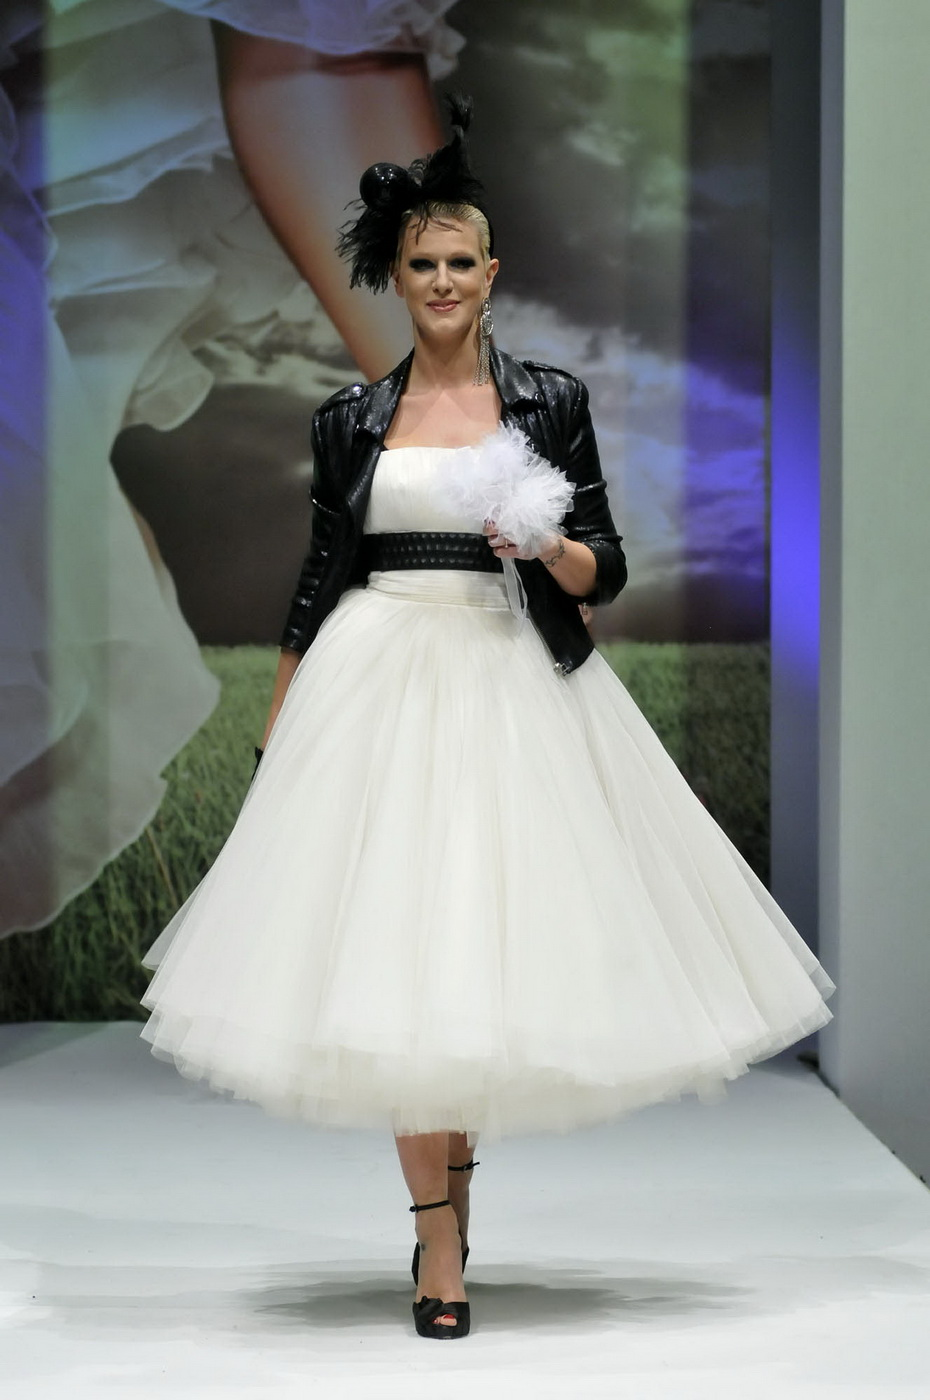 Wedding Show 2011 Tijana Dapcevic